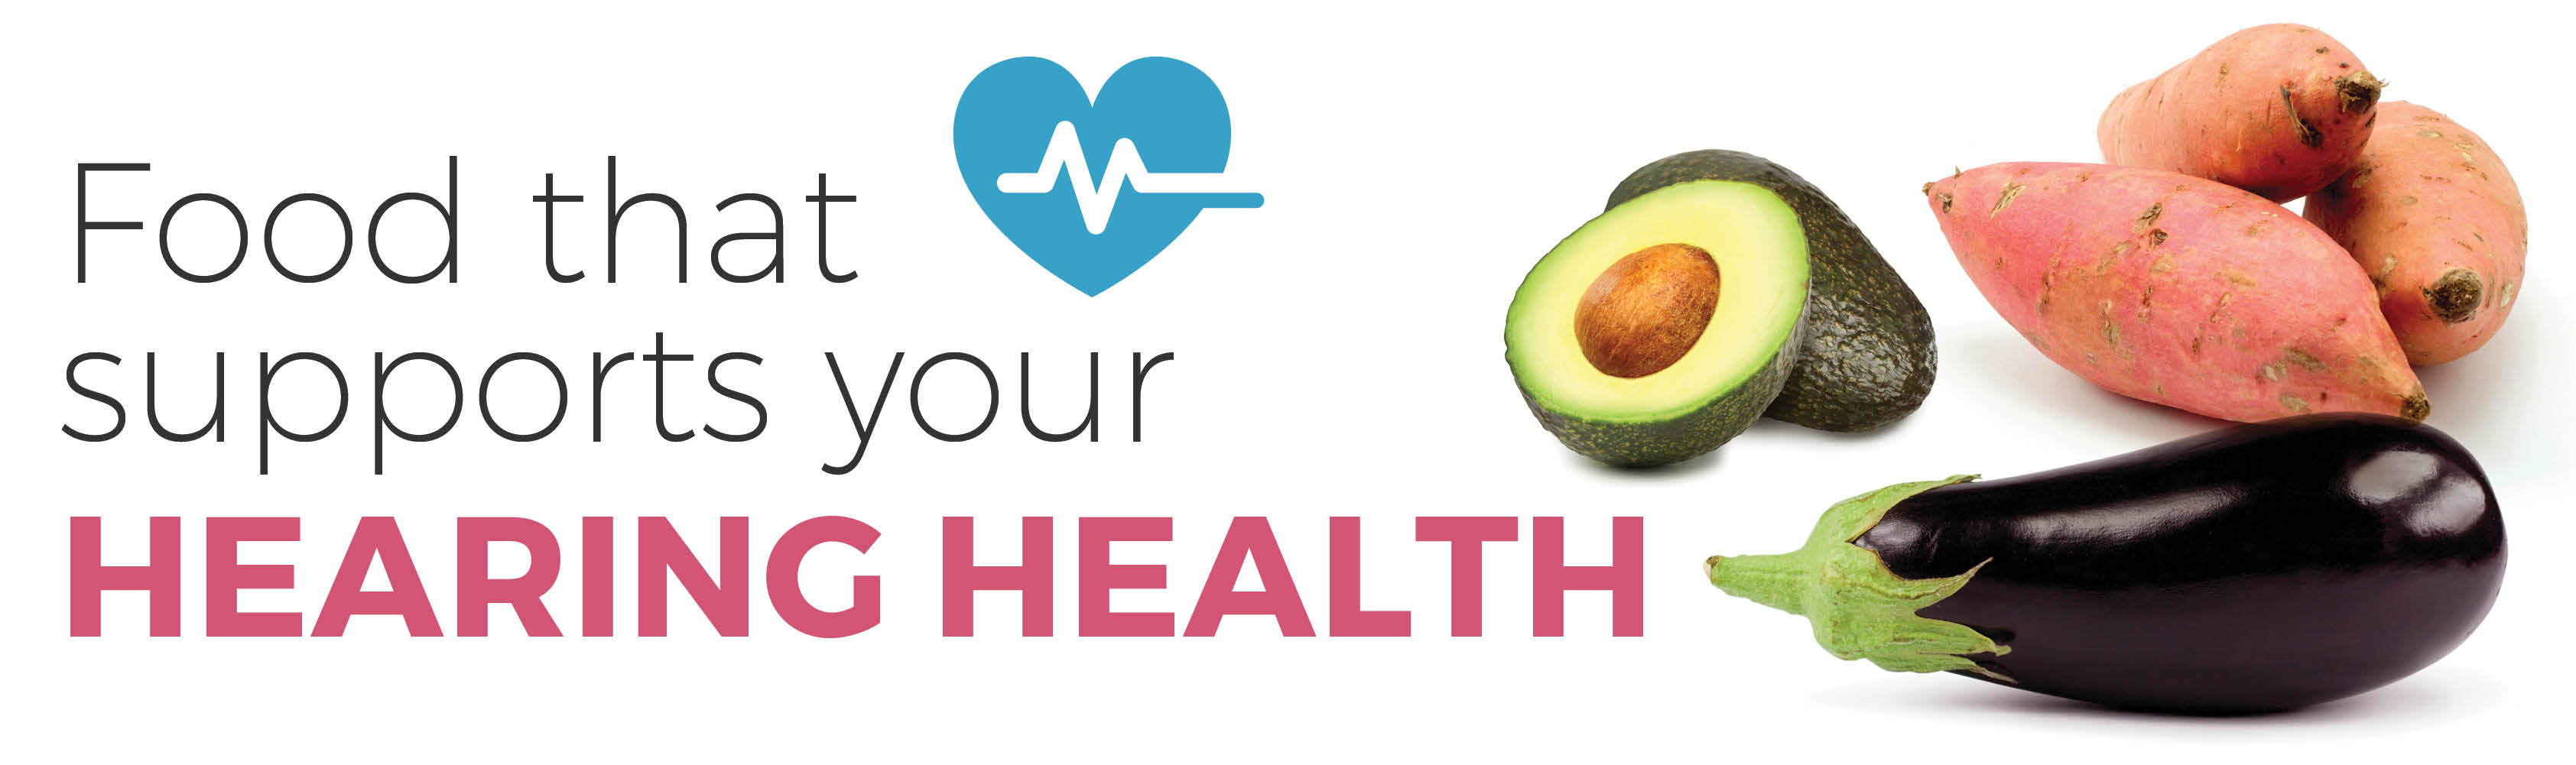 Foods that support your hearing health